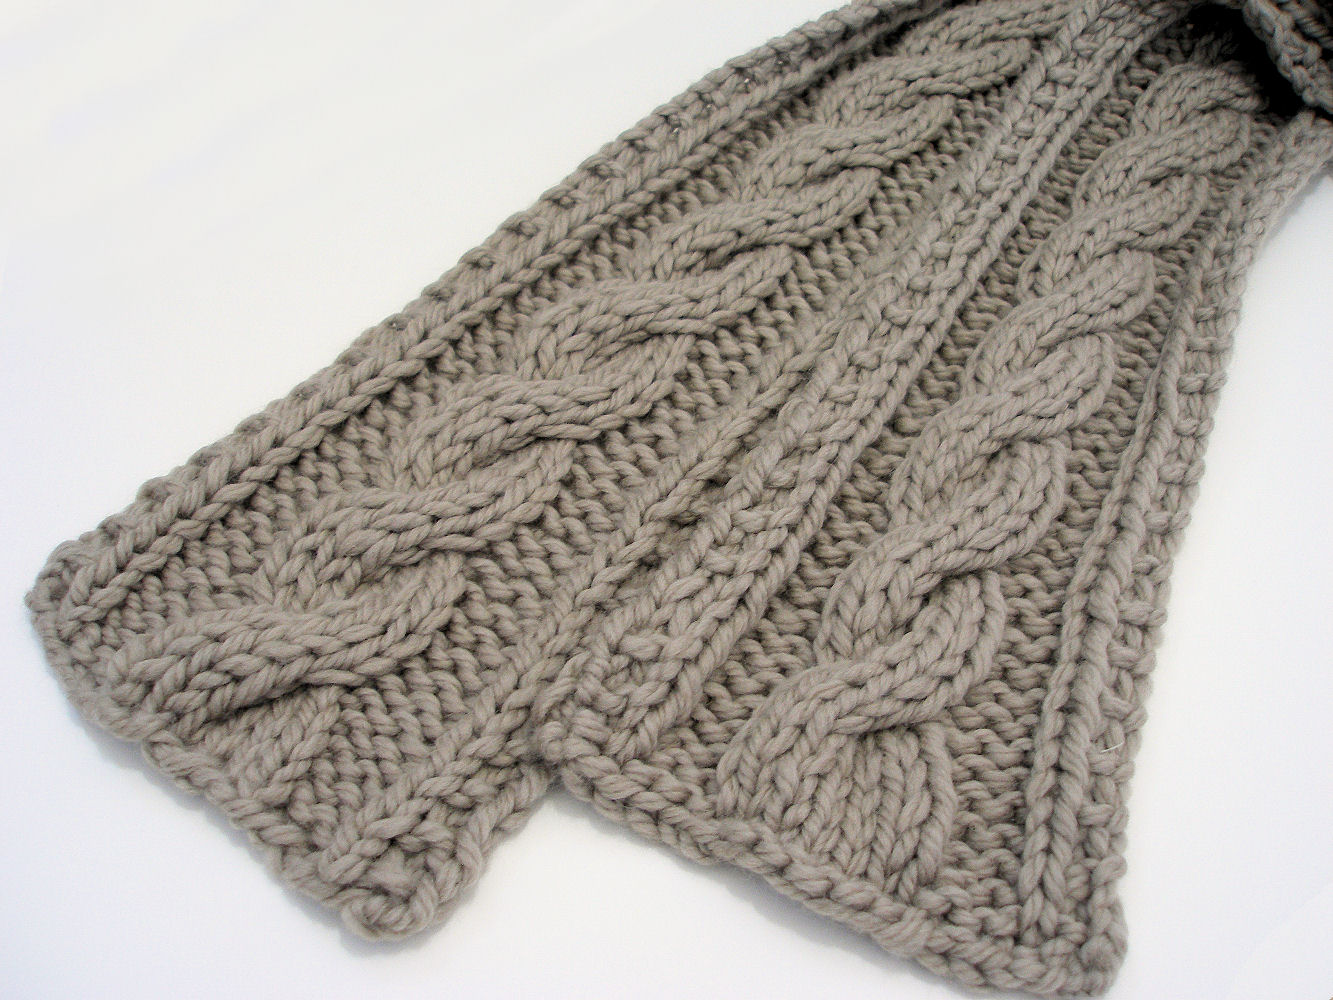 Scarf Knitting Pattern : Crochet Scarf Patterns Free Crochet Childrens Scarf Patterns